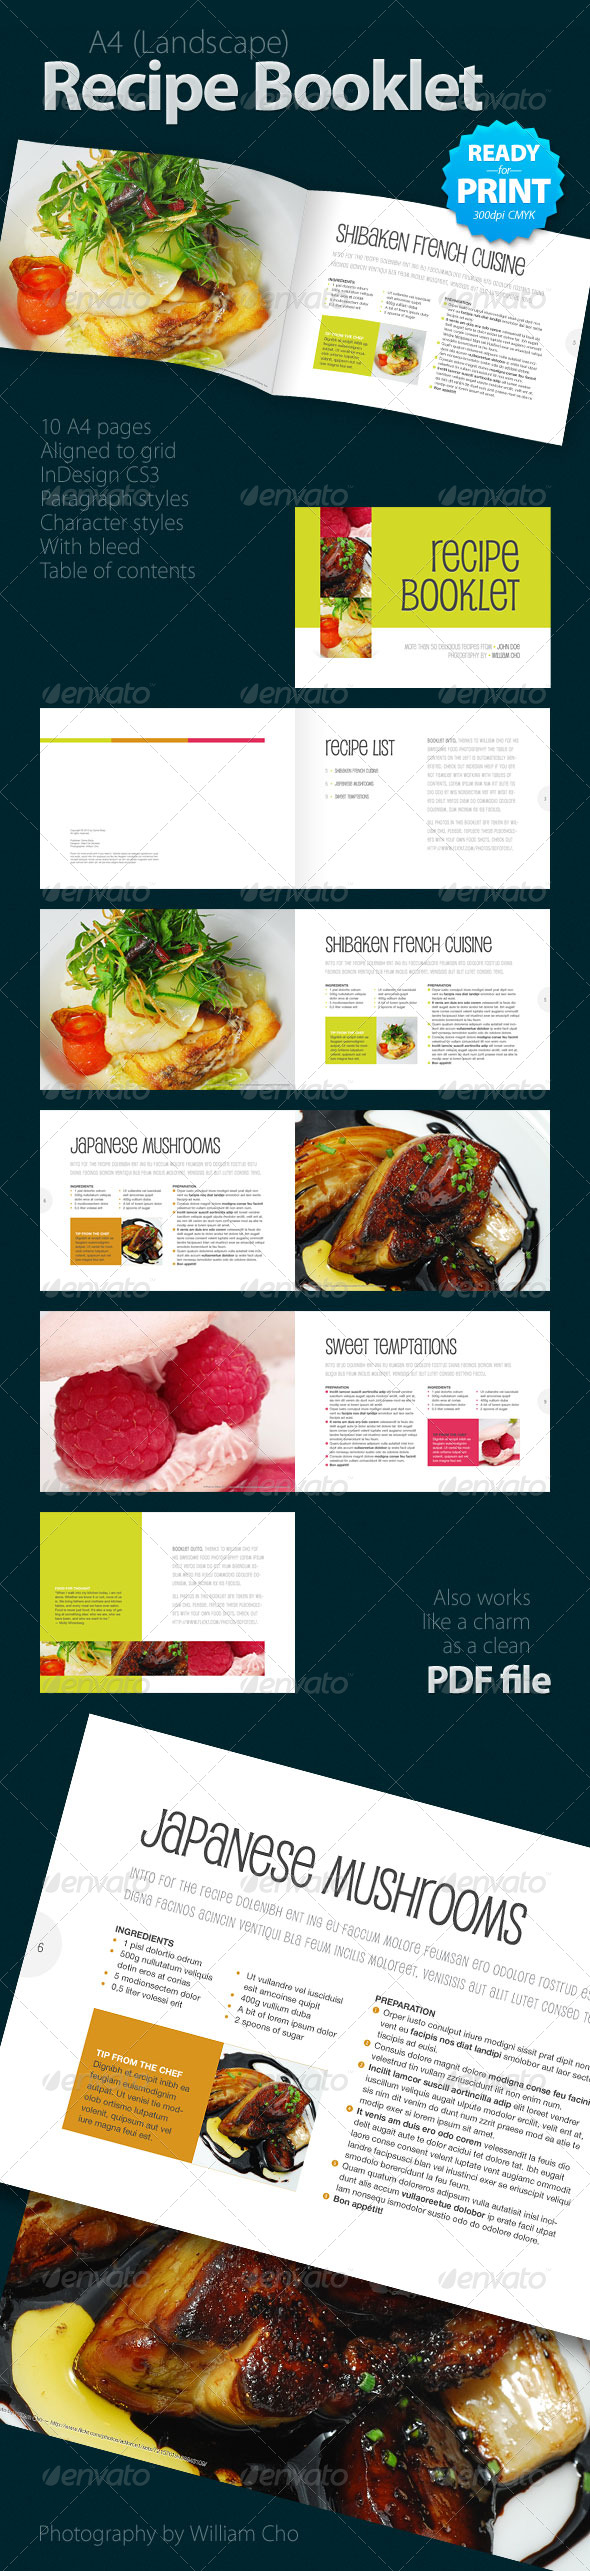 Recipe Booklet (10 pages)